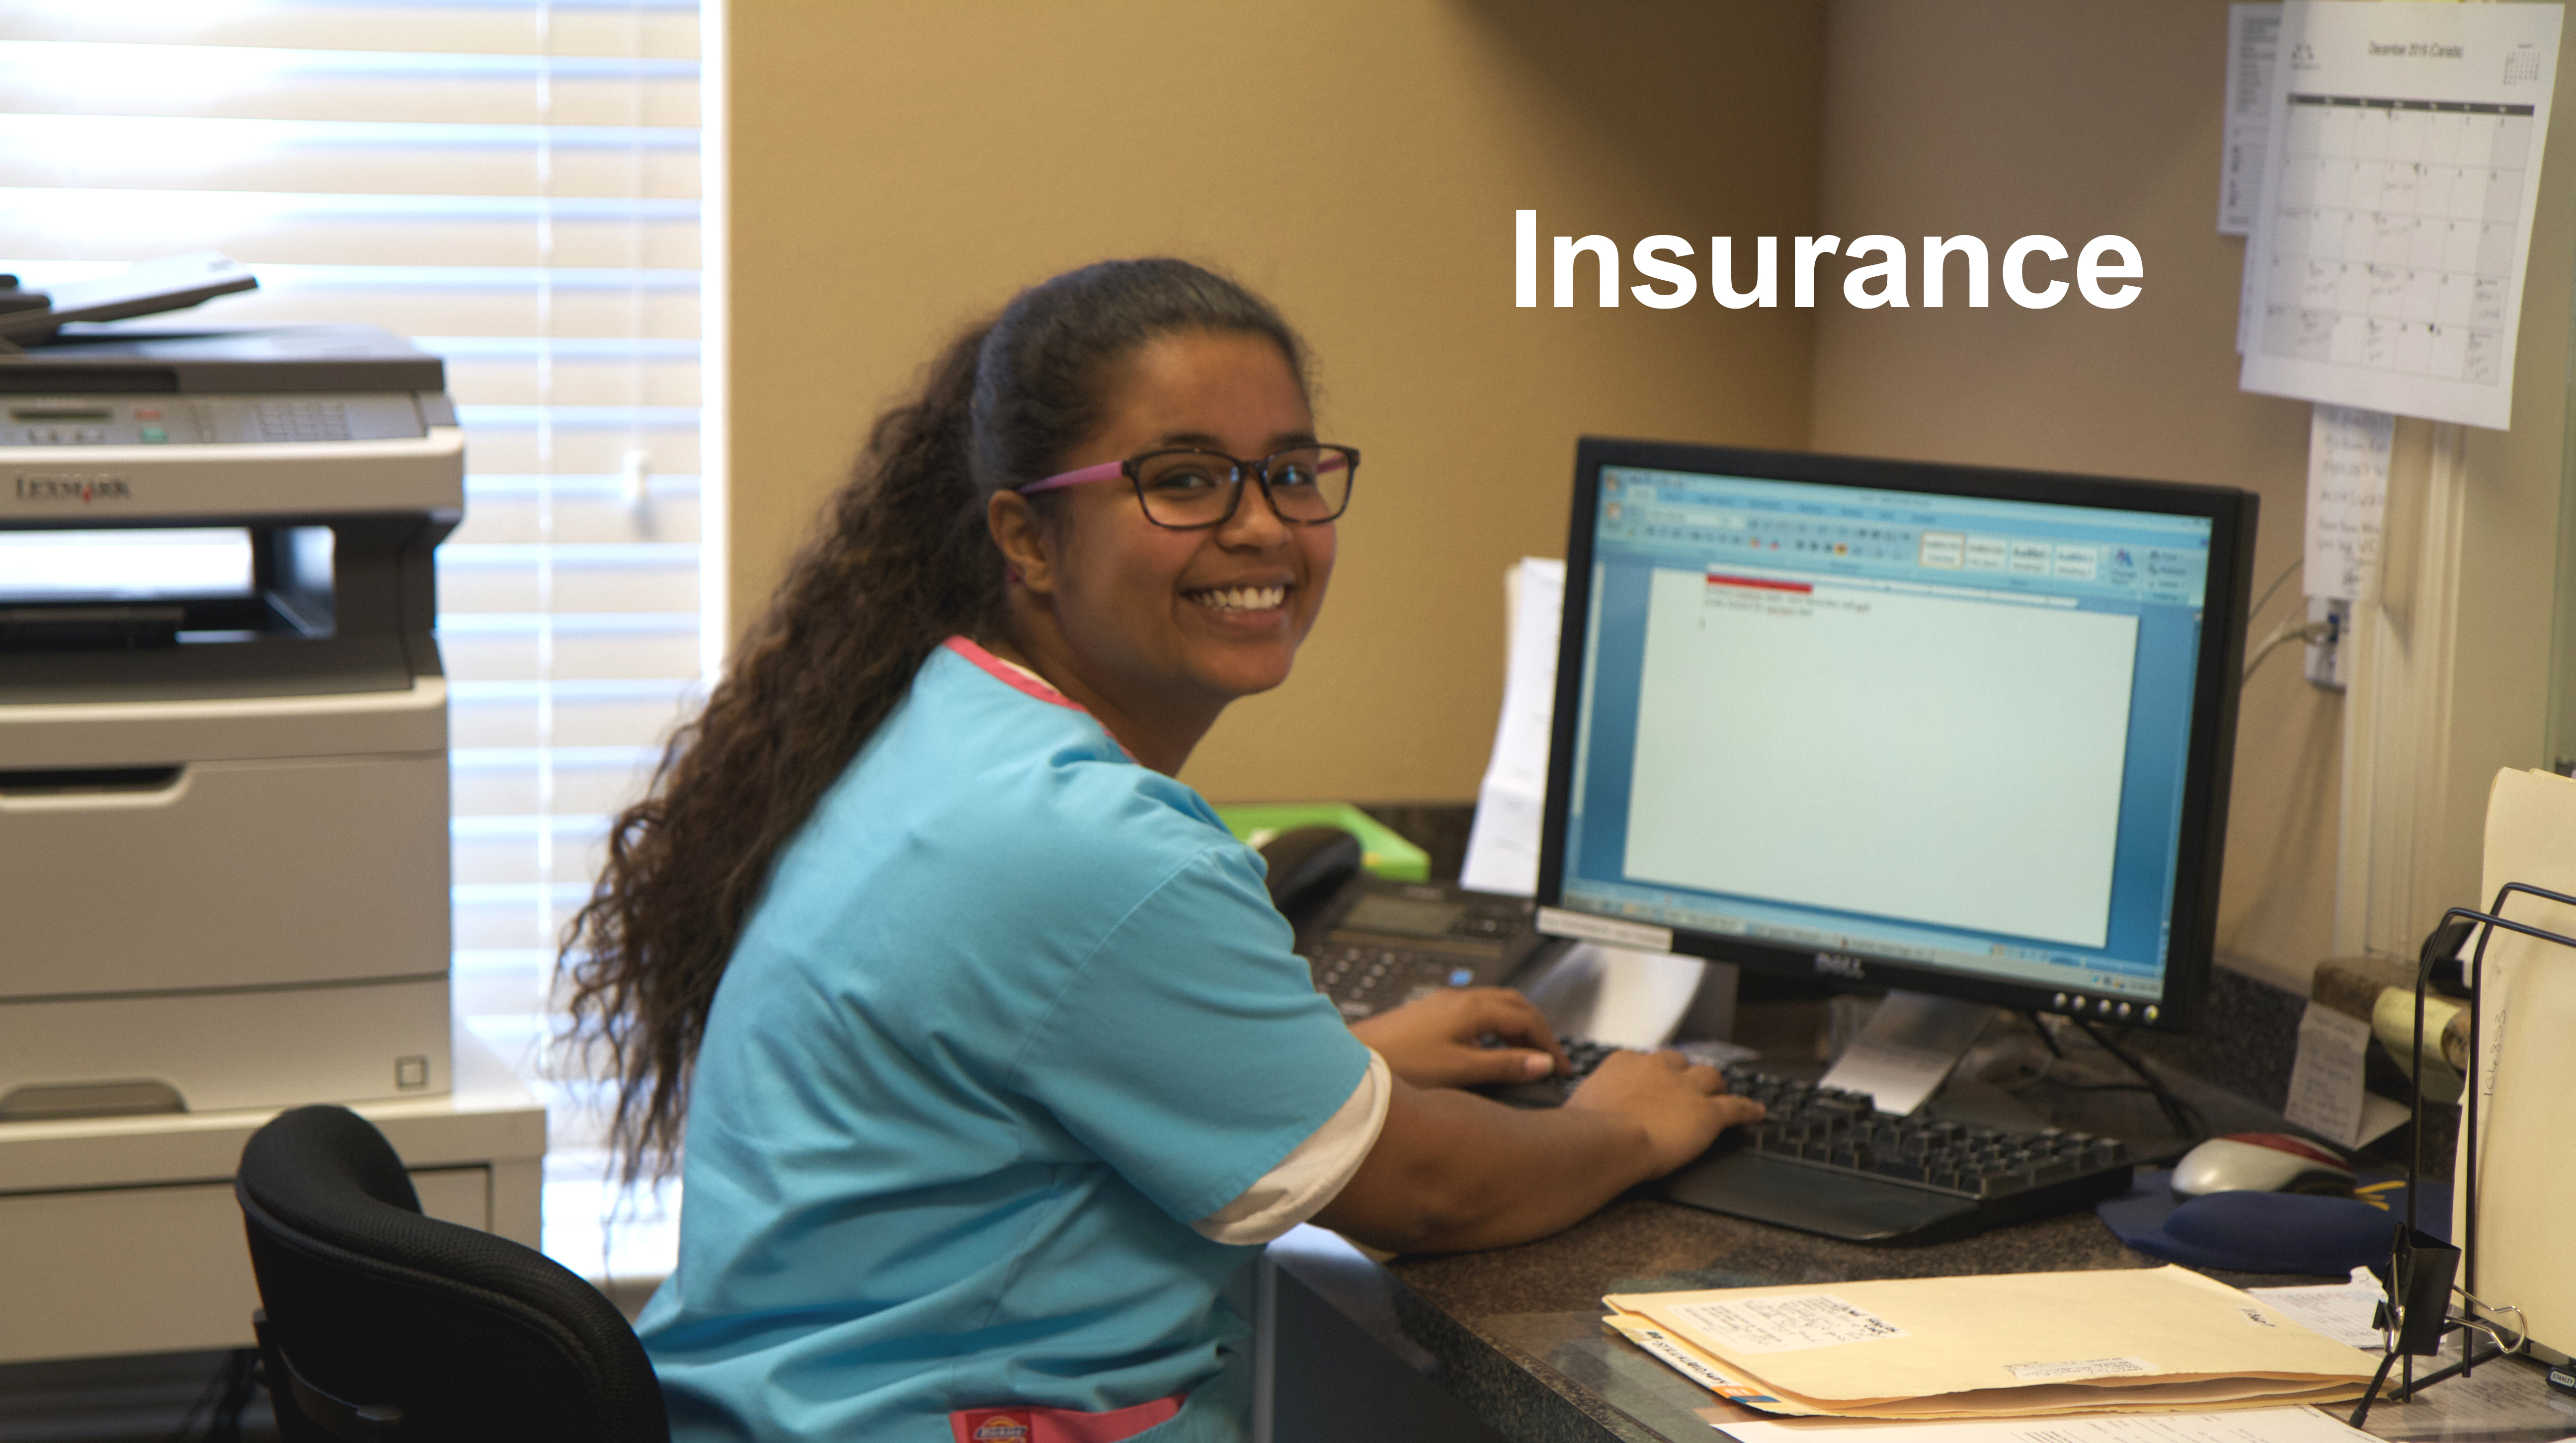 34b6c467b61 We are a provider for the following insurance. However